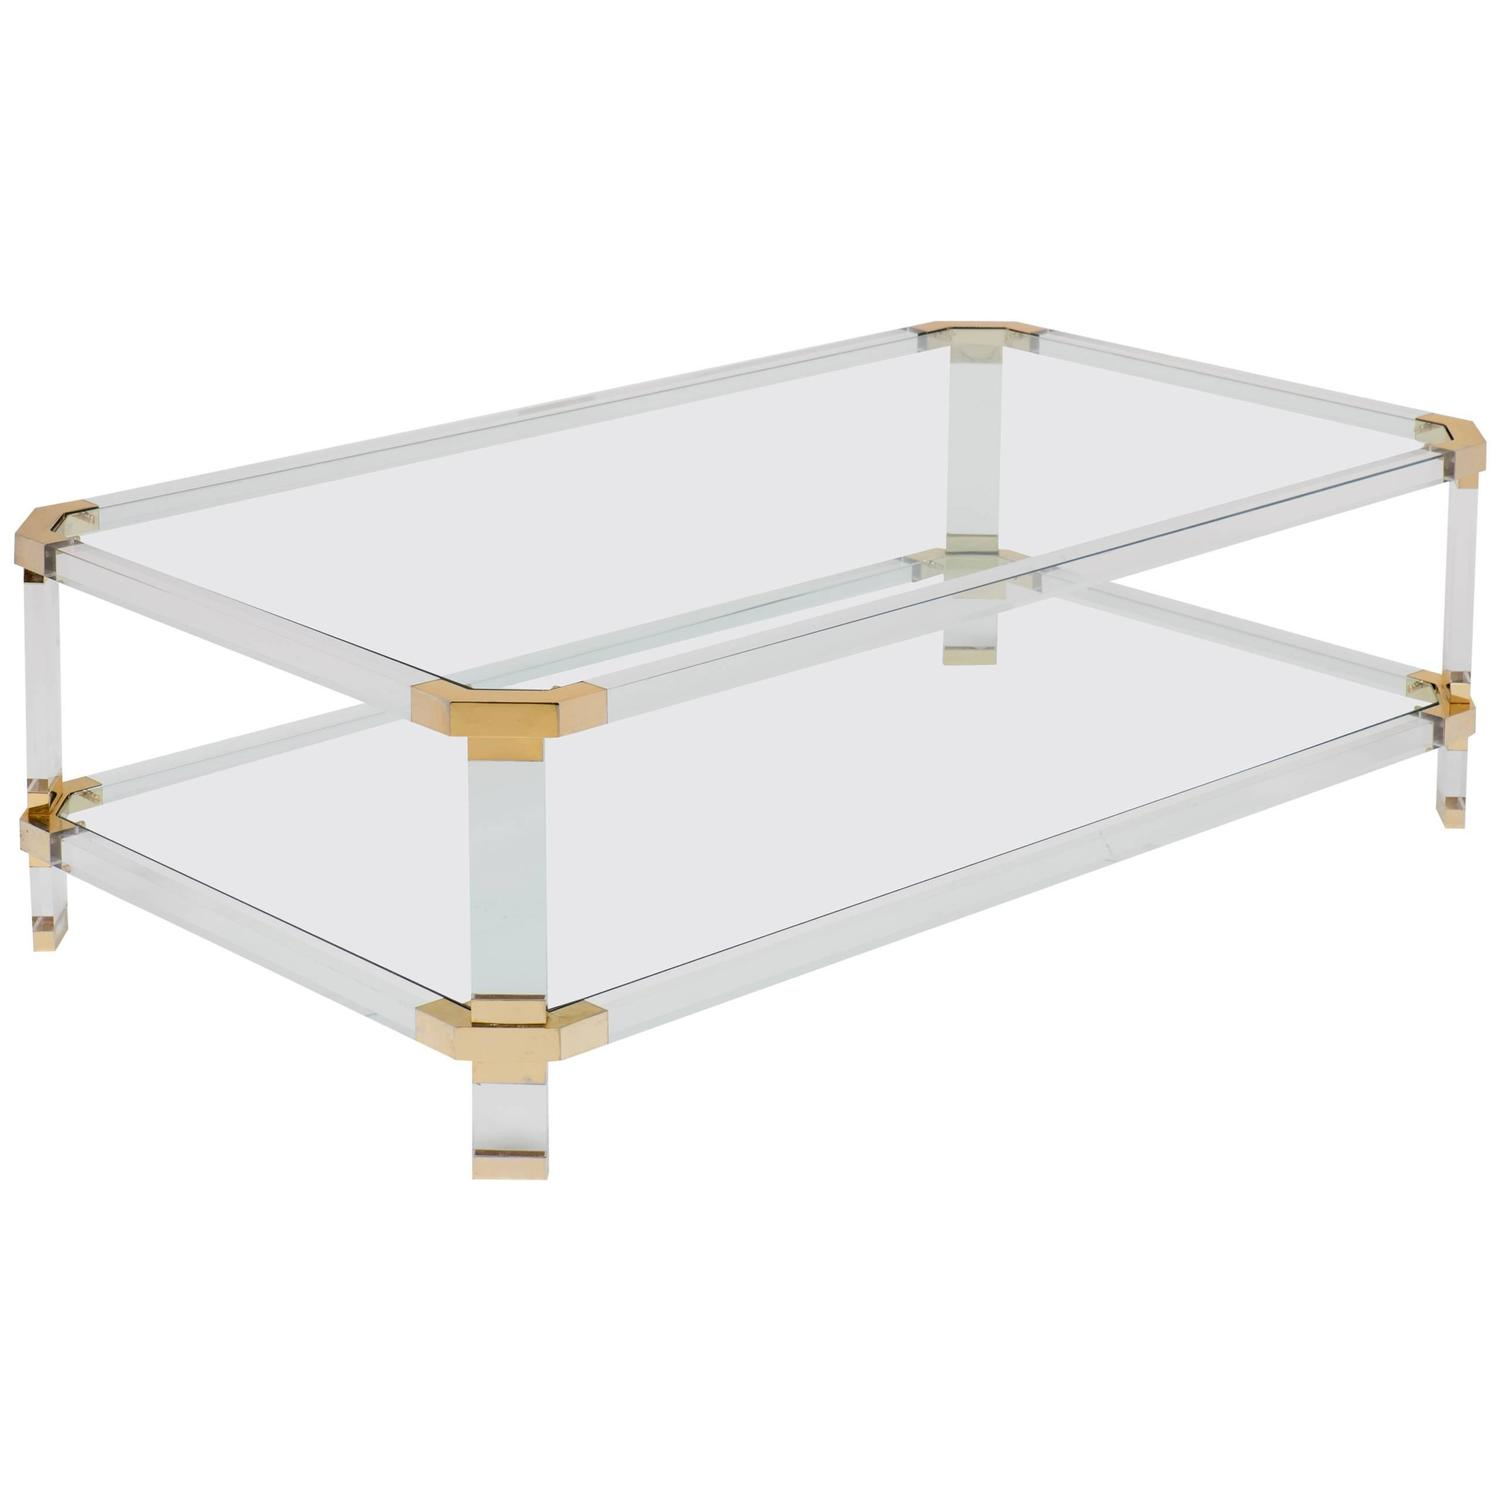 French Modernist Lucite Coffee Table At 1stdibs